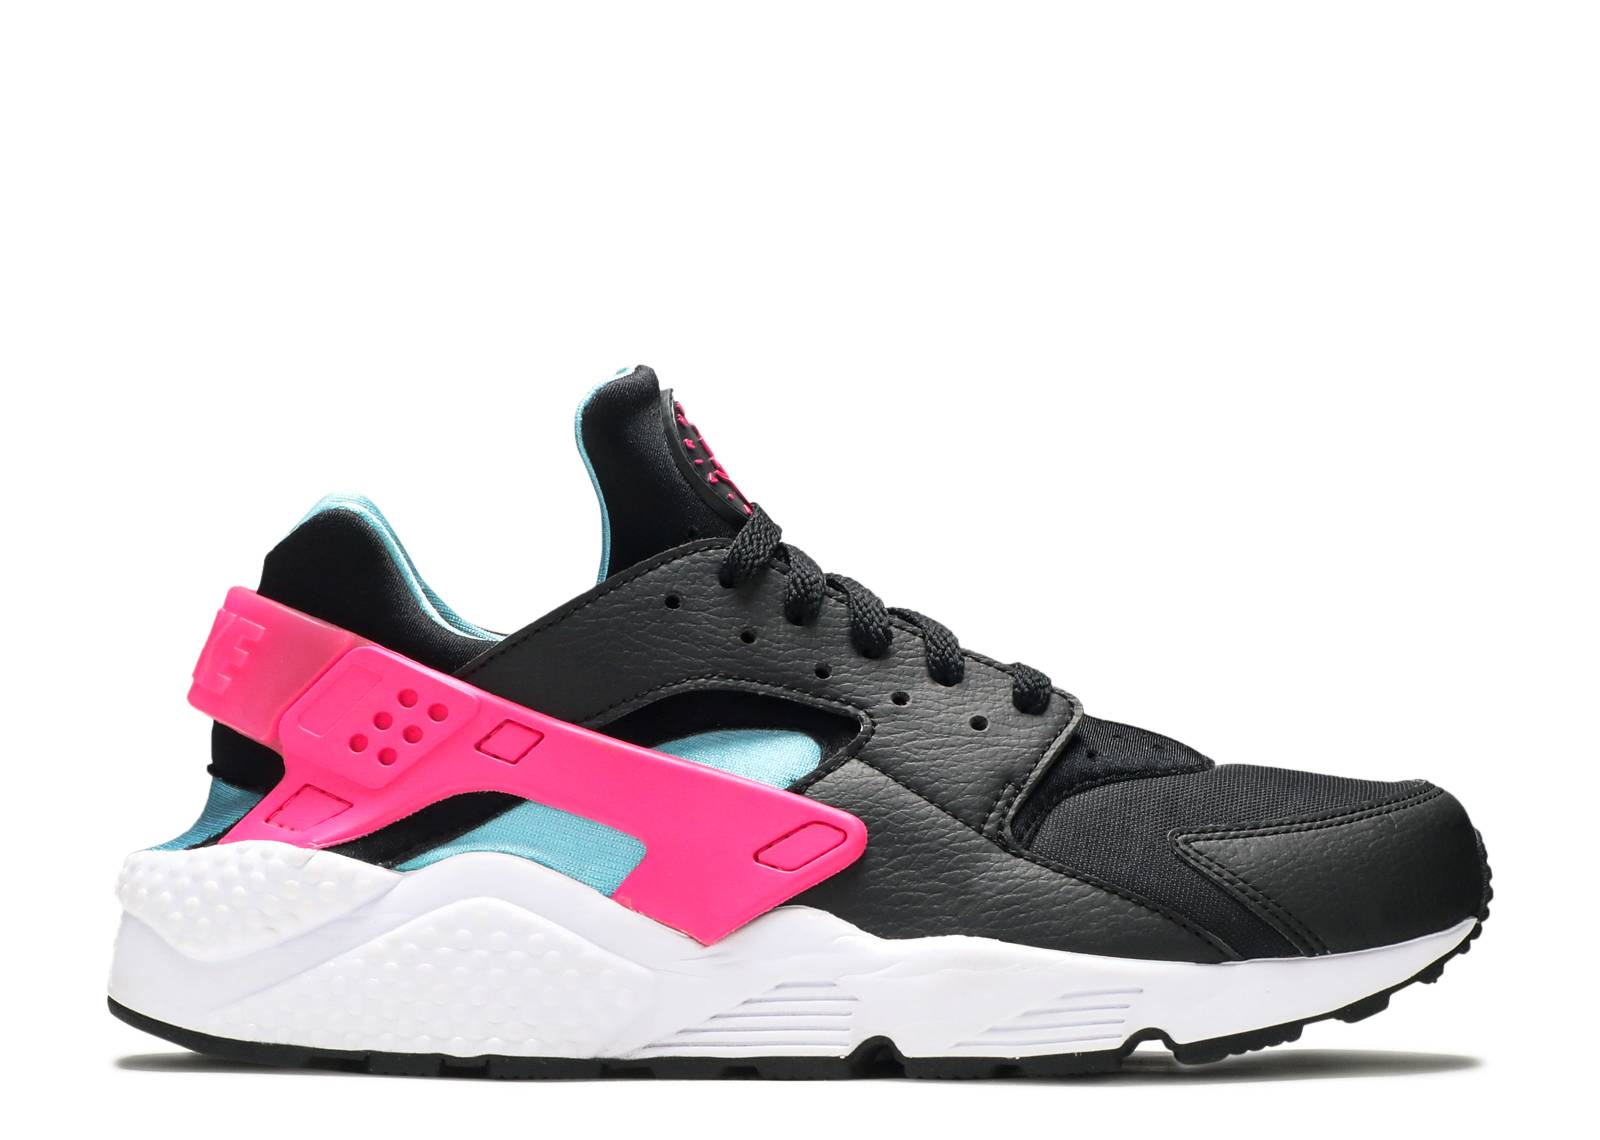 707b1b82aaeed Nike Air Huarache Run